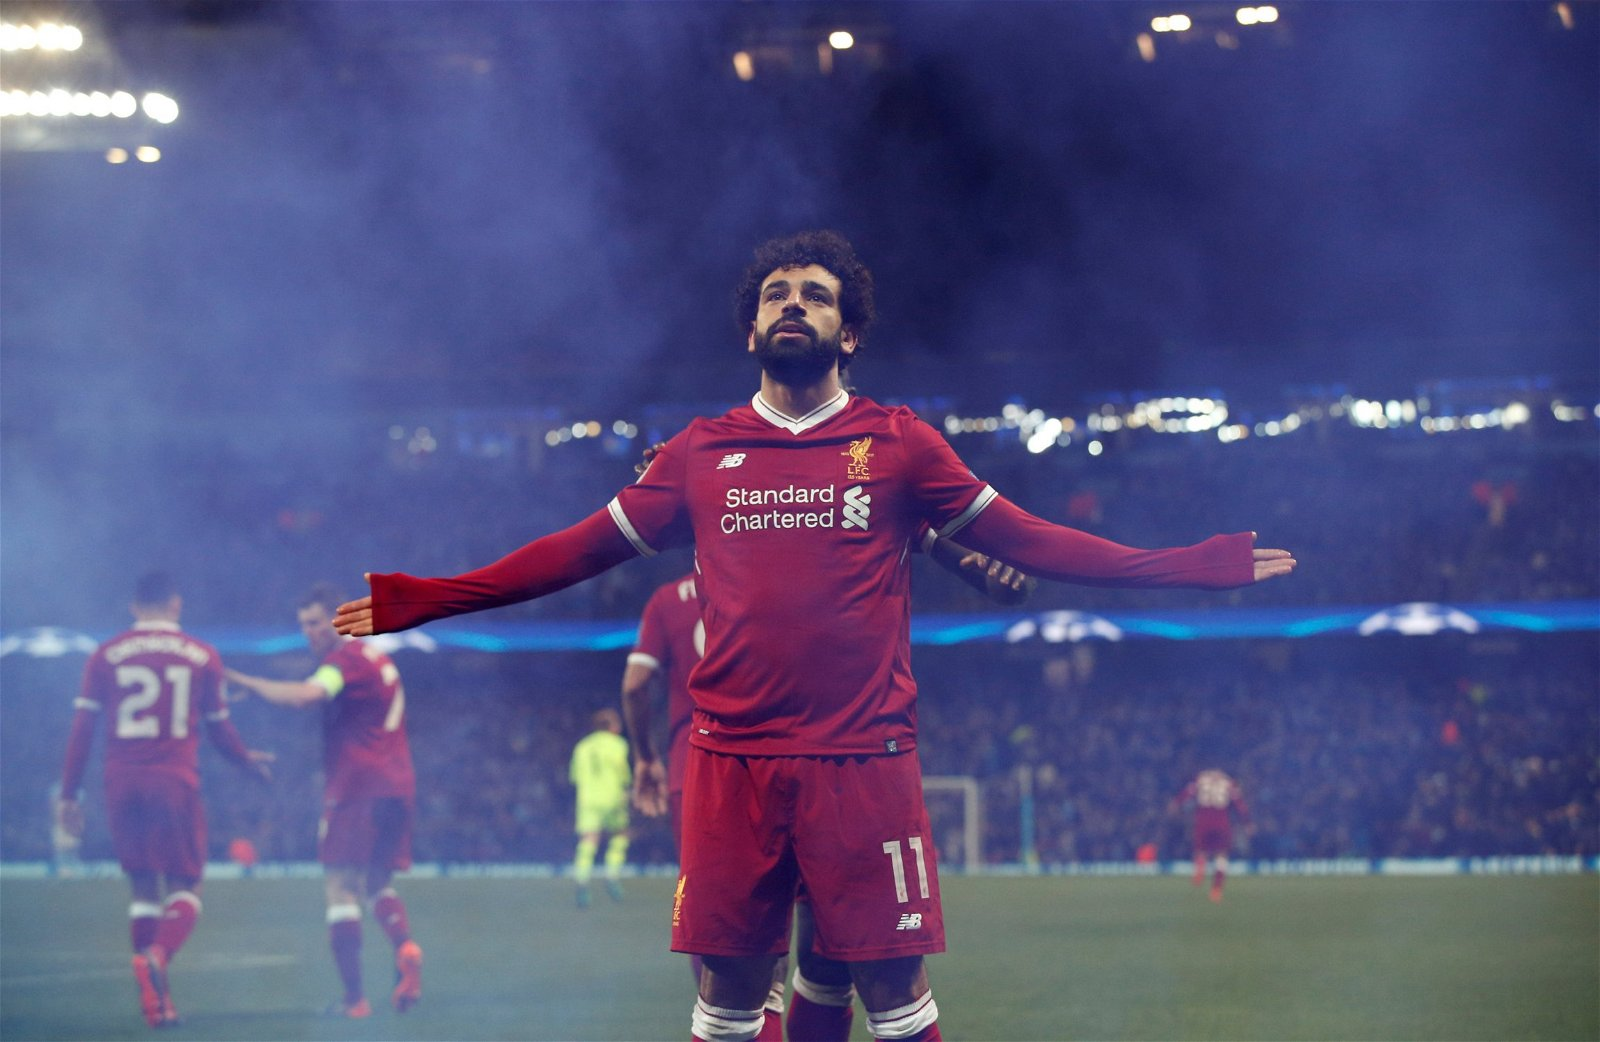 Liverpool's Mohamed Salah celebrates scoring against Manchester City in the Champions League quarter-final